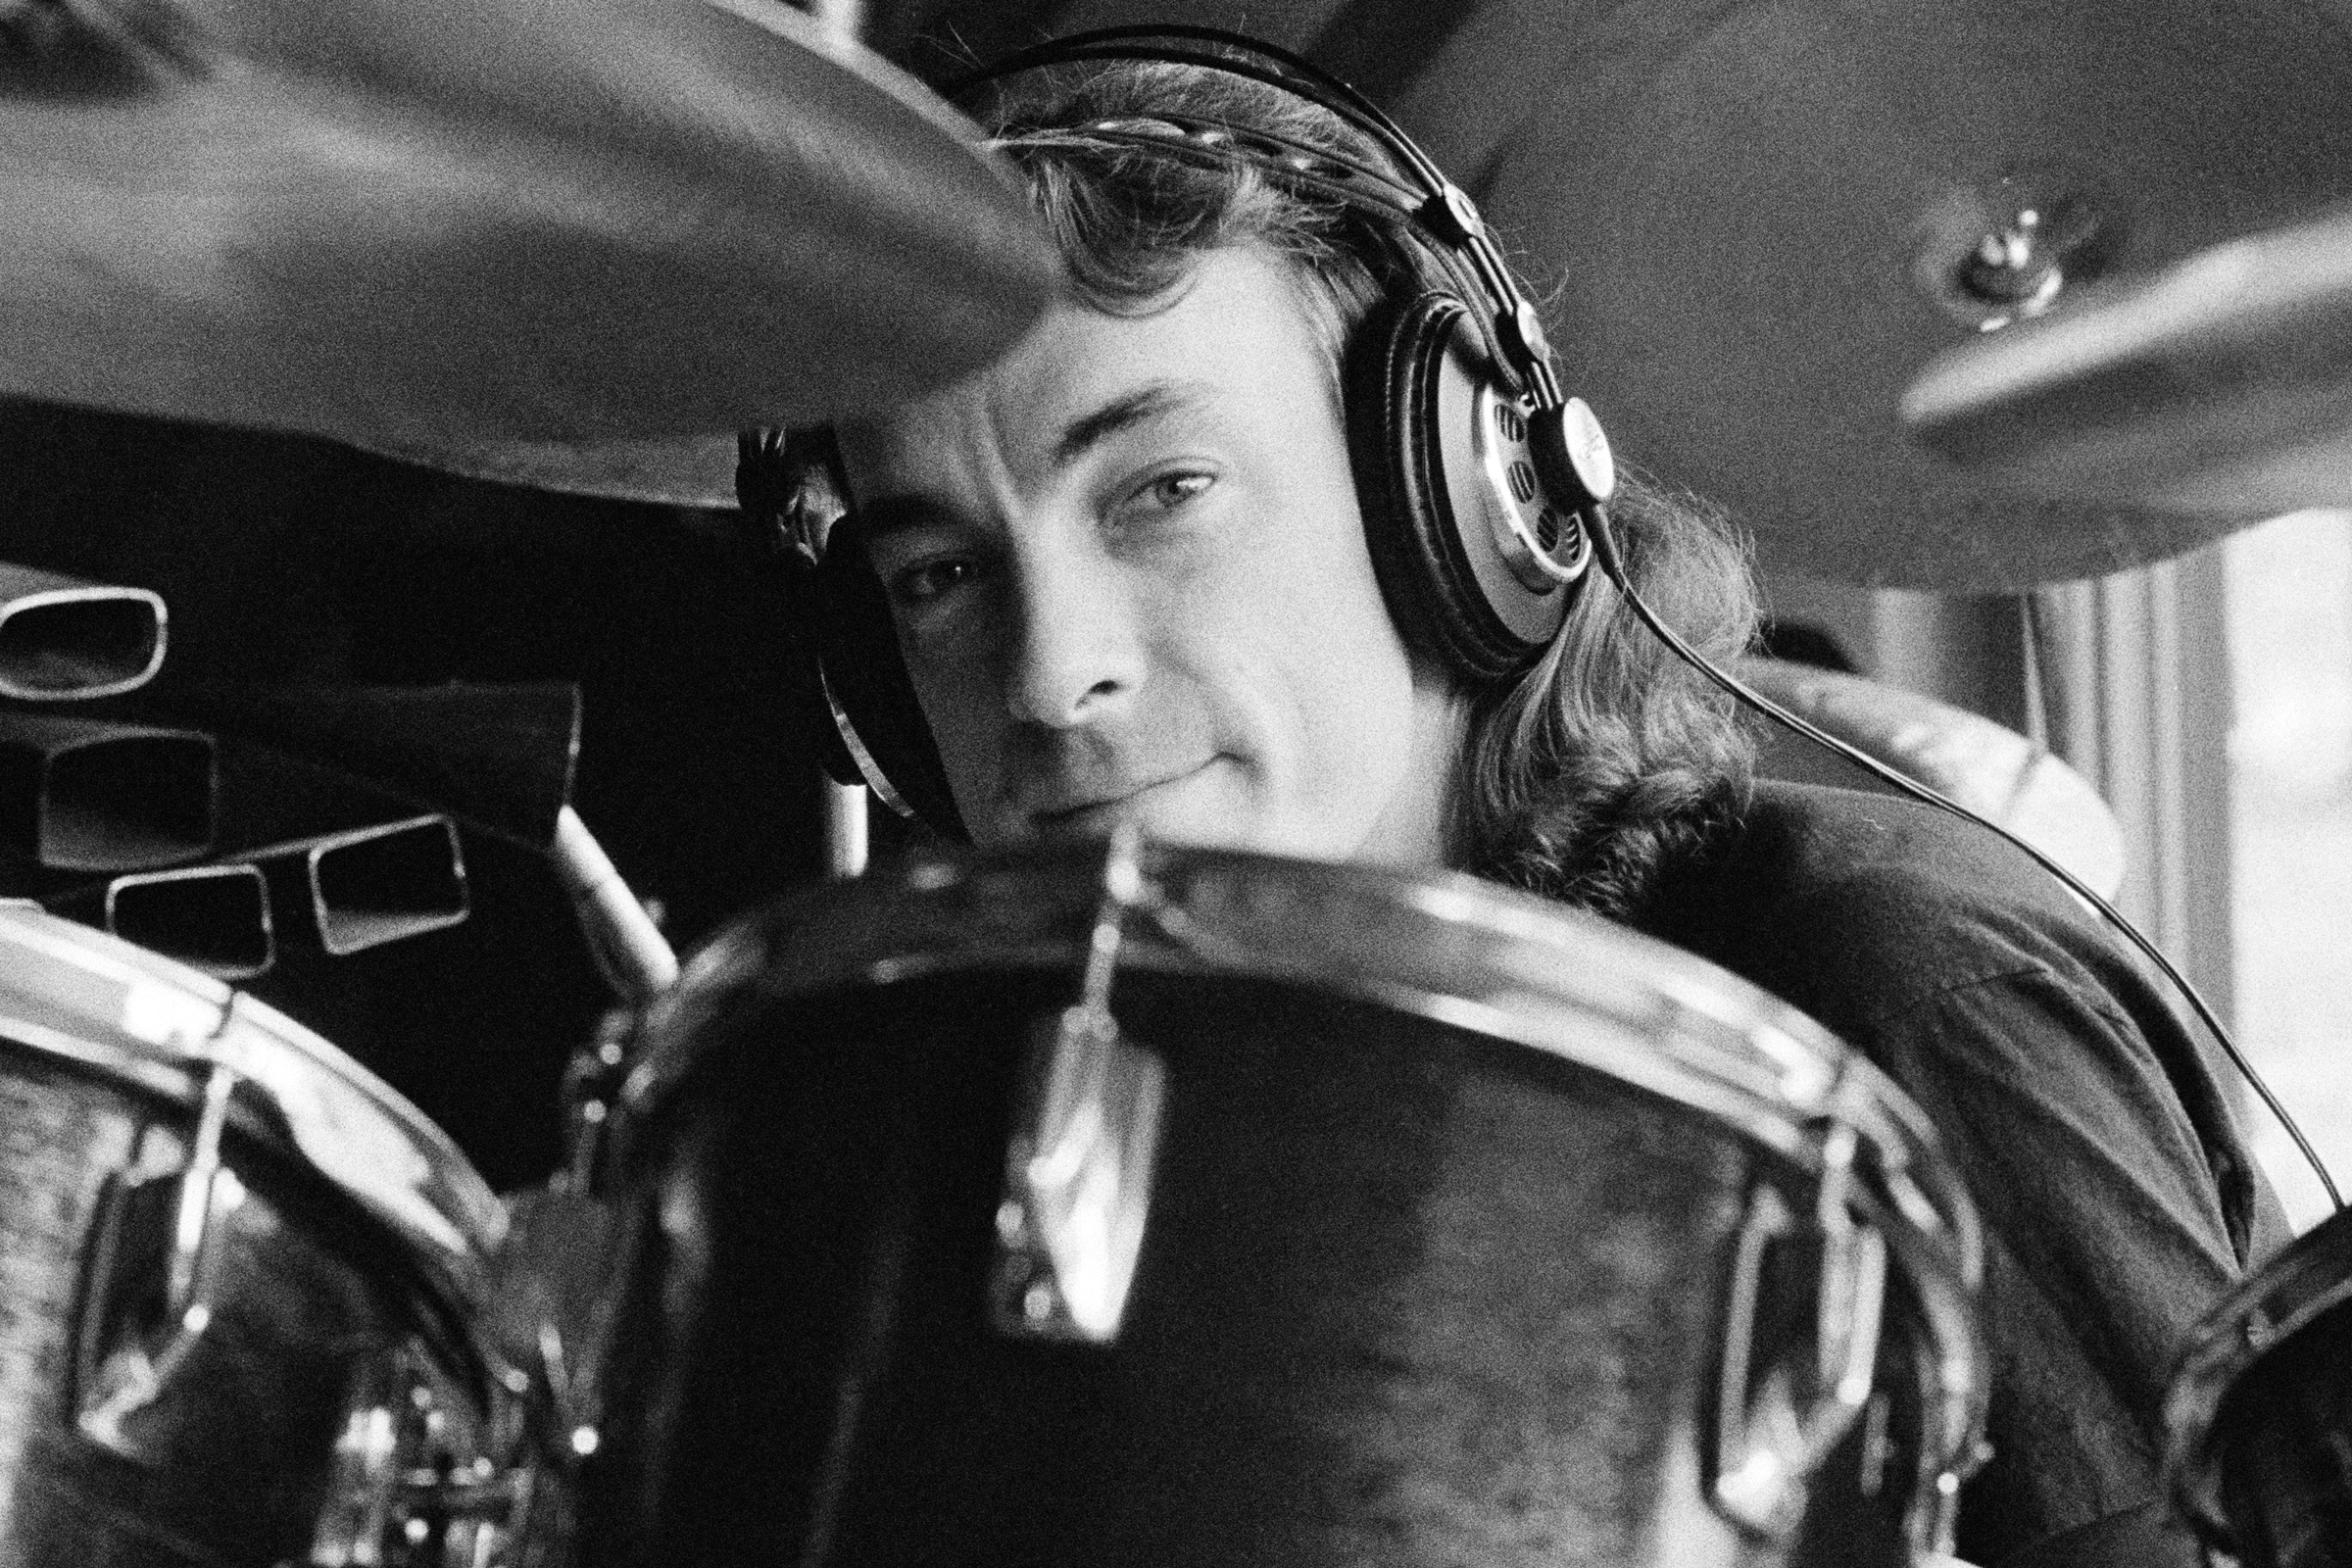 The Professor. Neil Peart 1952-2020.